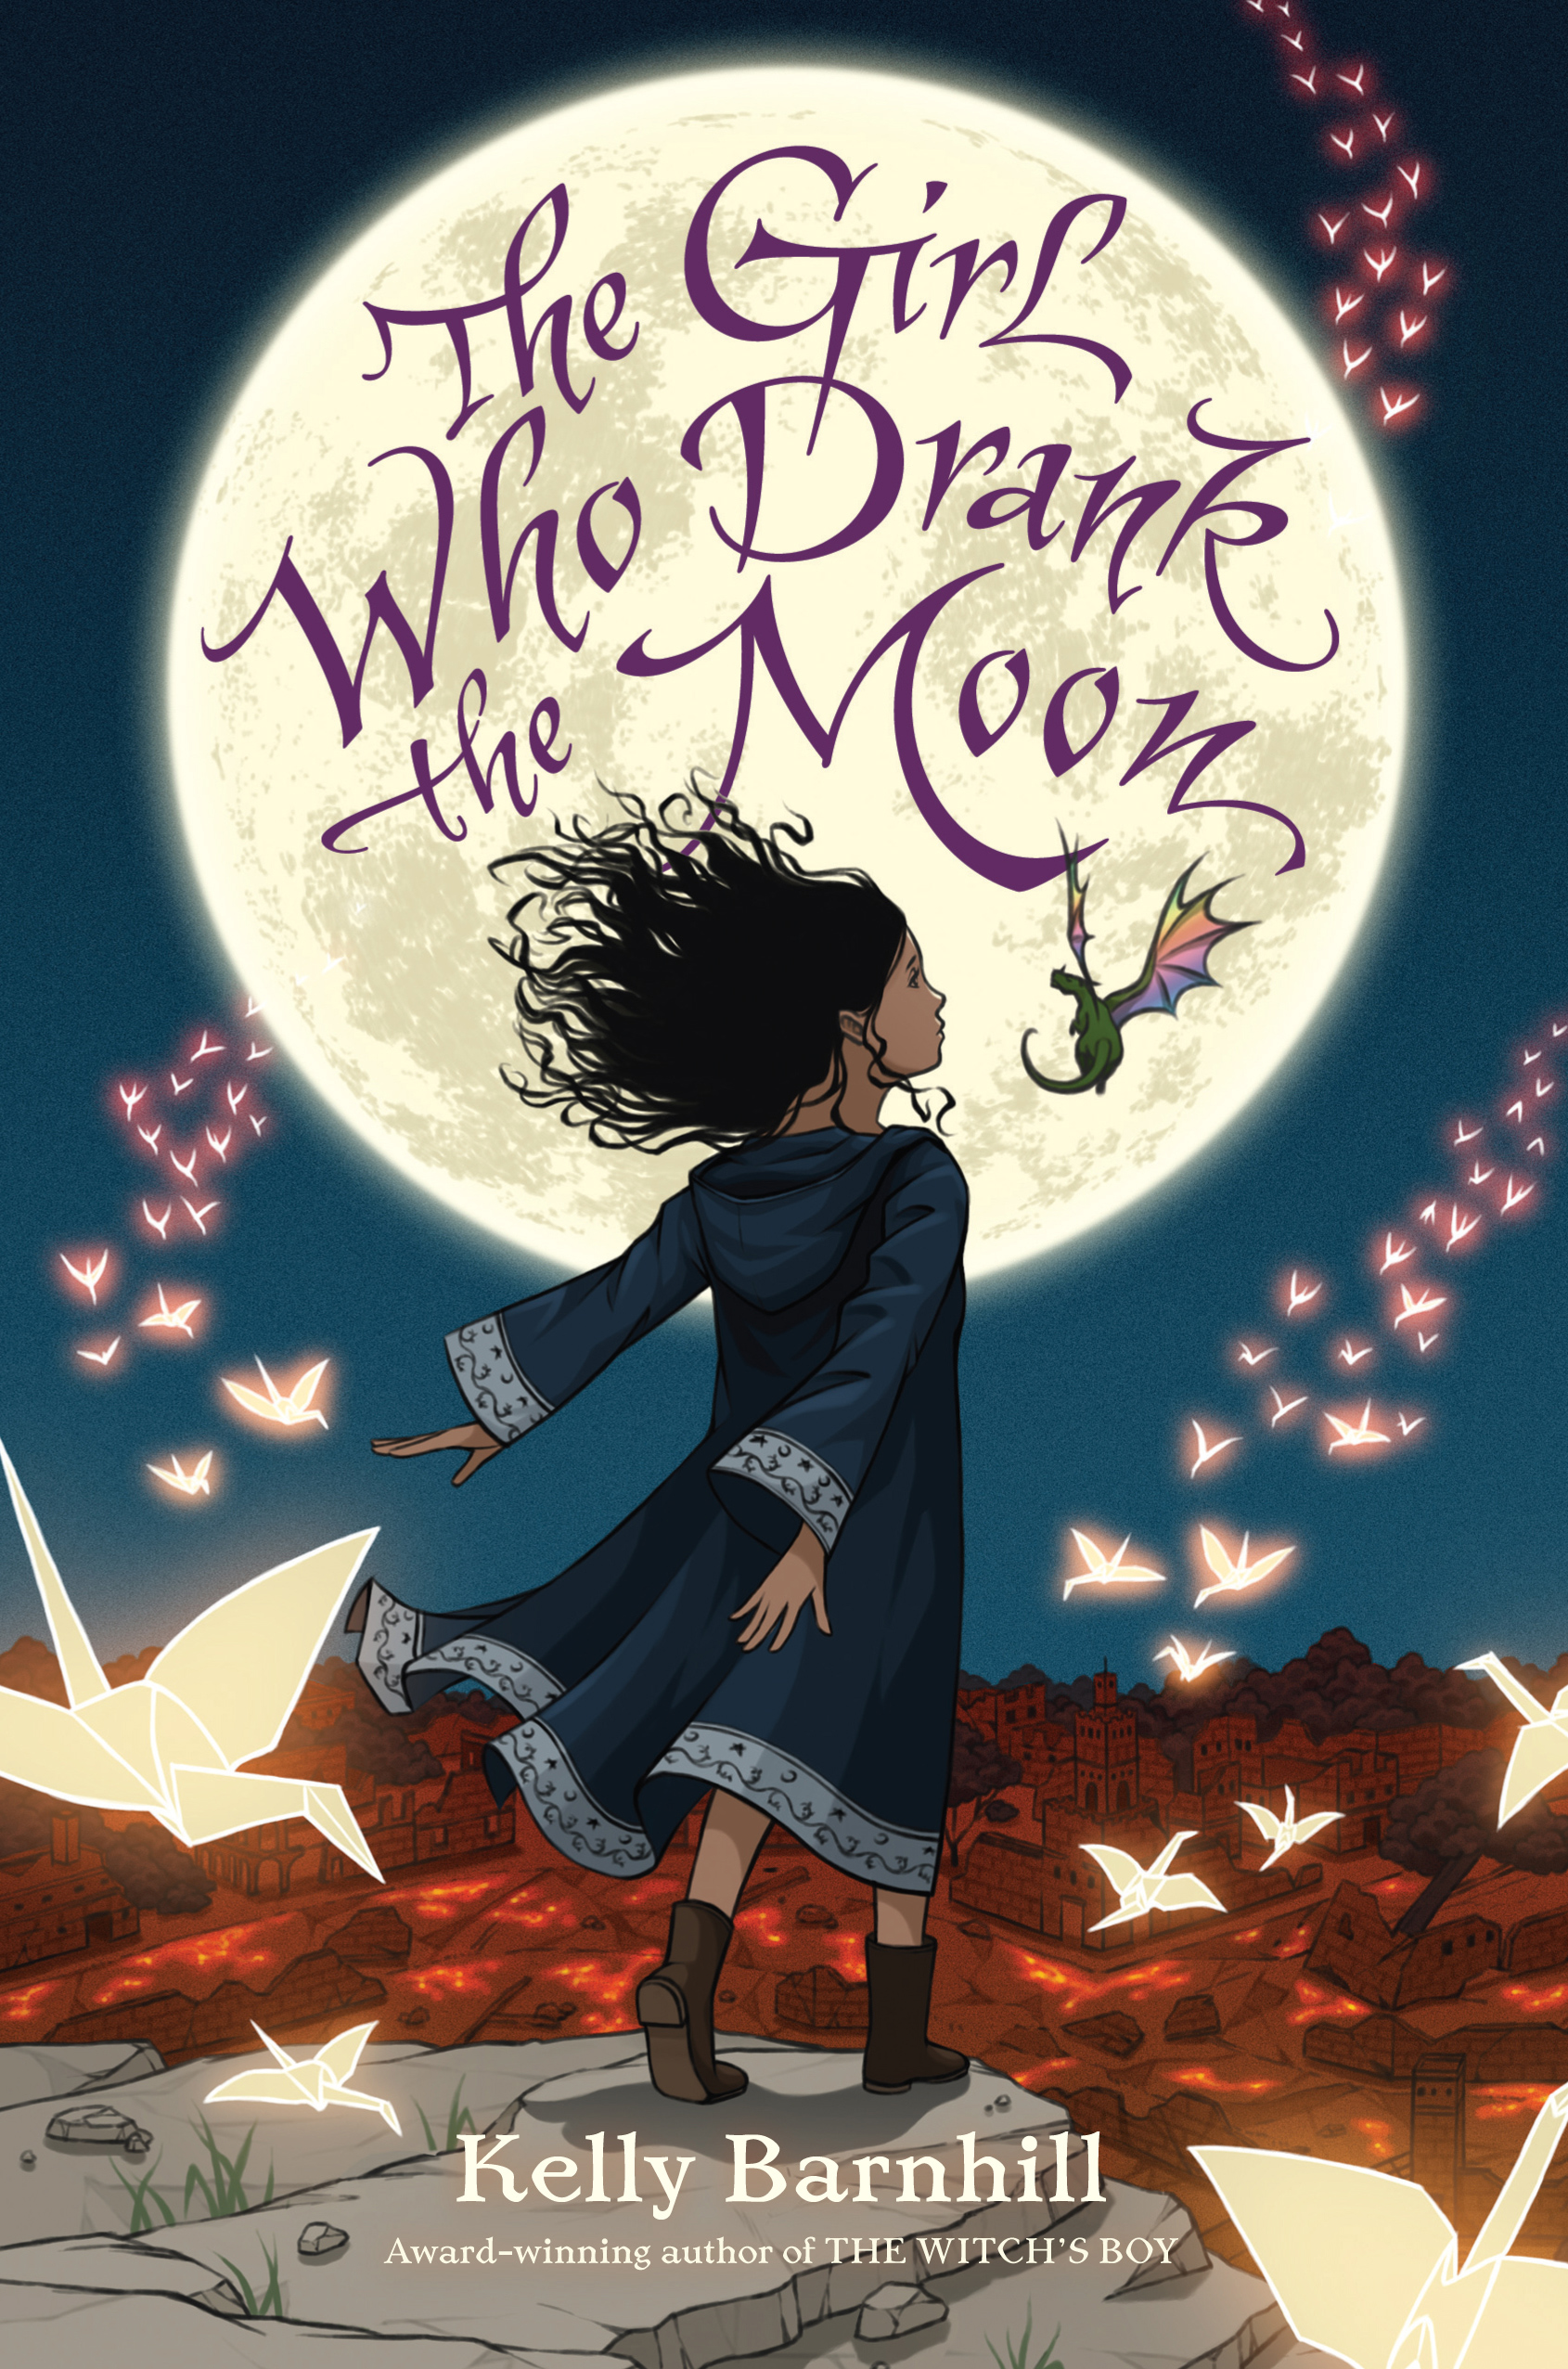 The Girl Who Drank Moon